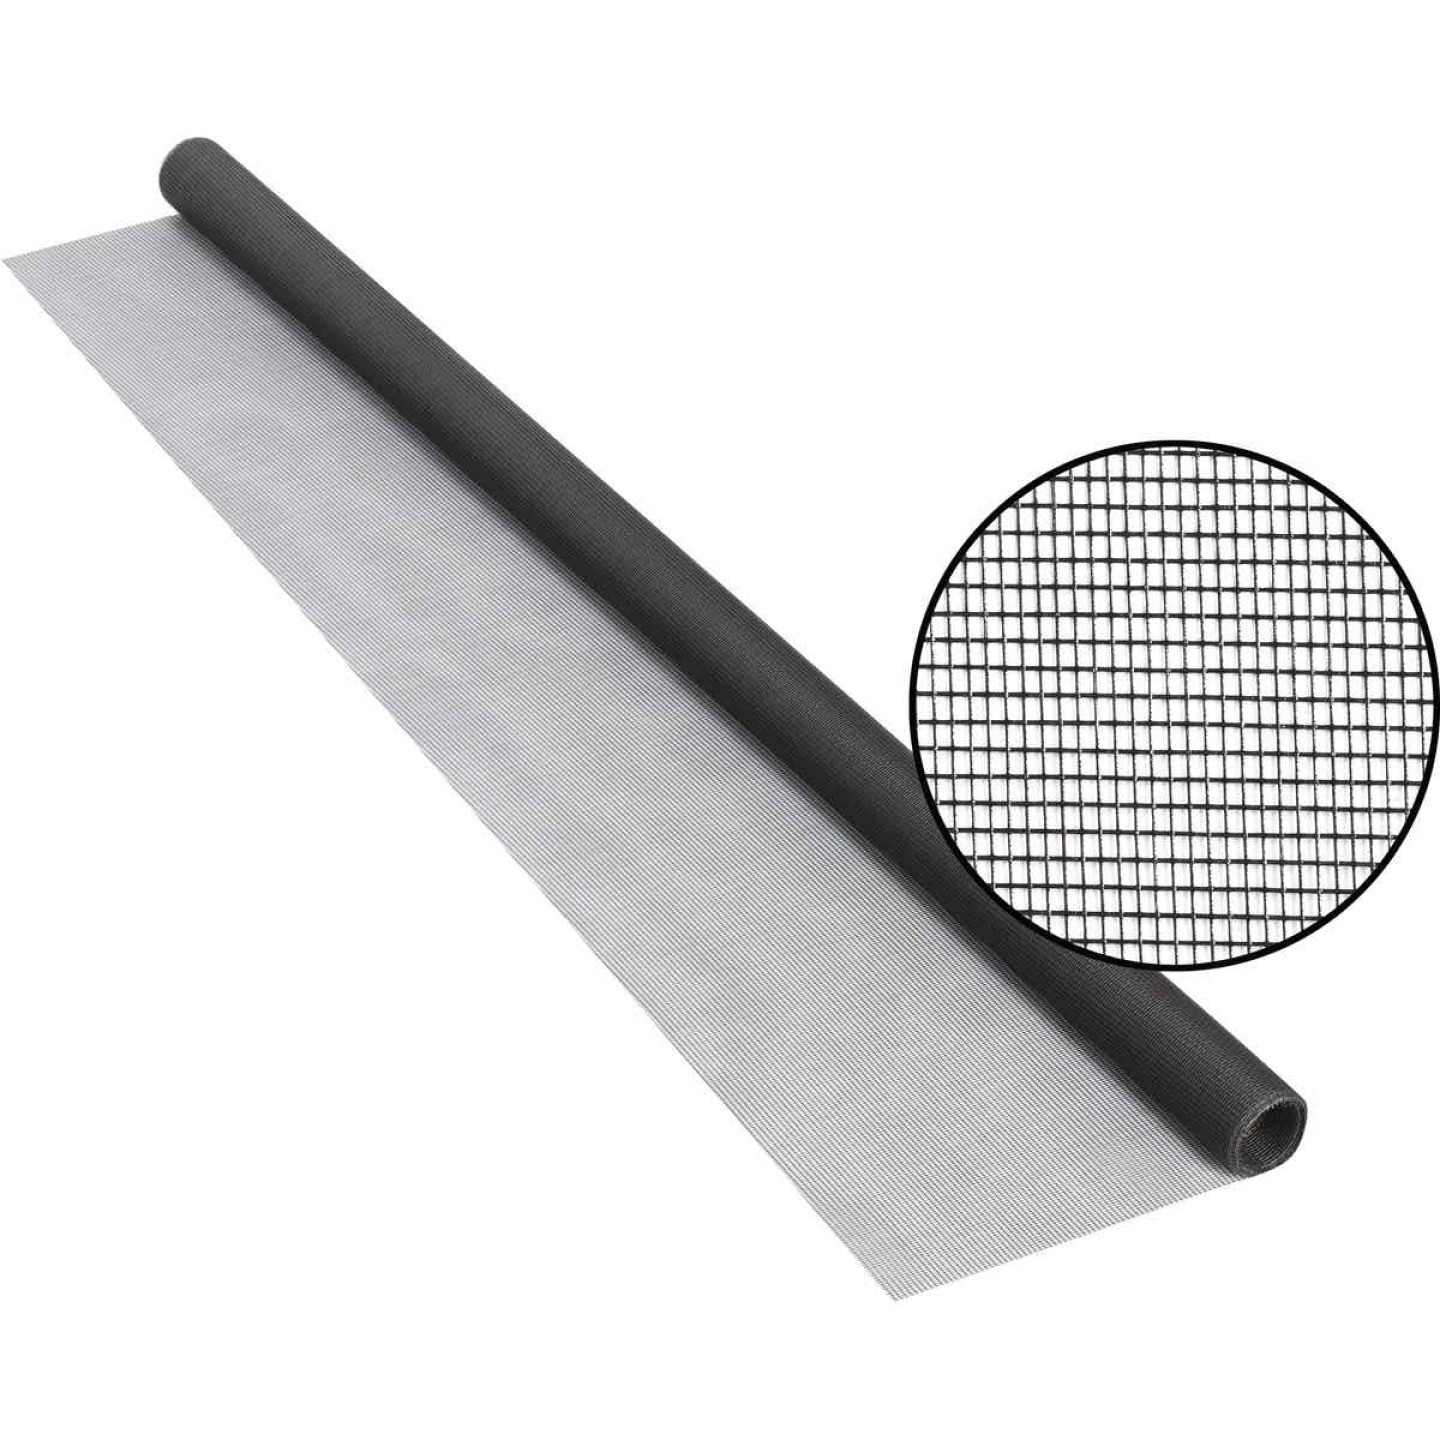 Phifer 36 In. x 84 In. Charcoal Fiberglass Screen Cloth Ready Rolls Image 1